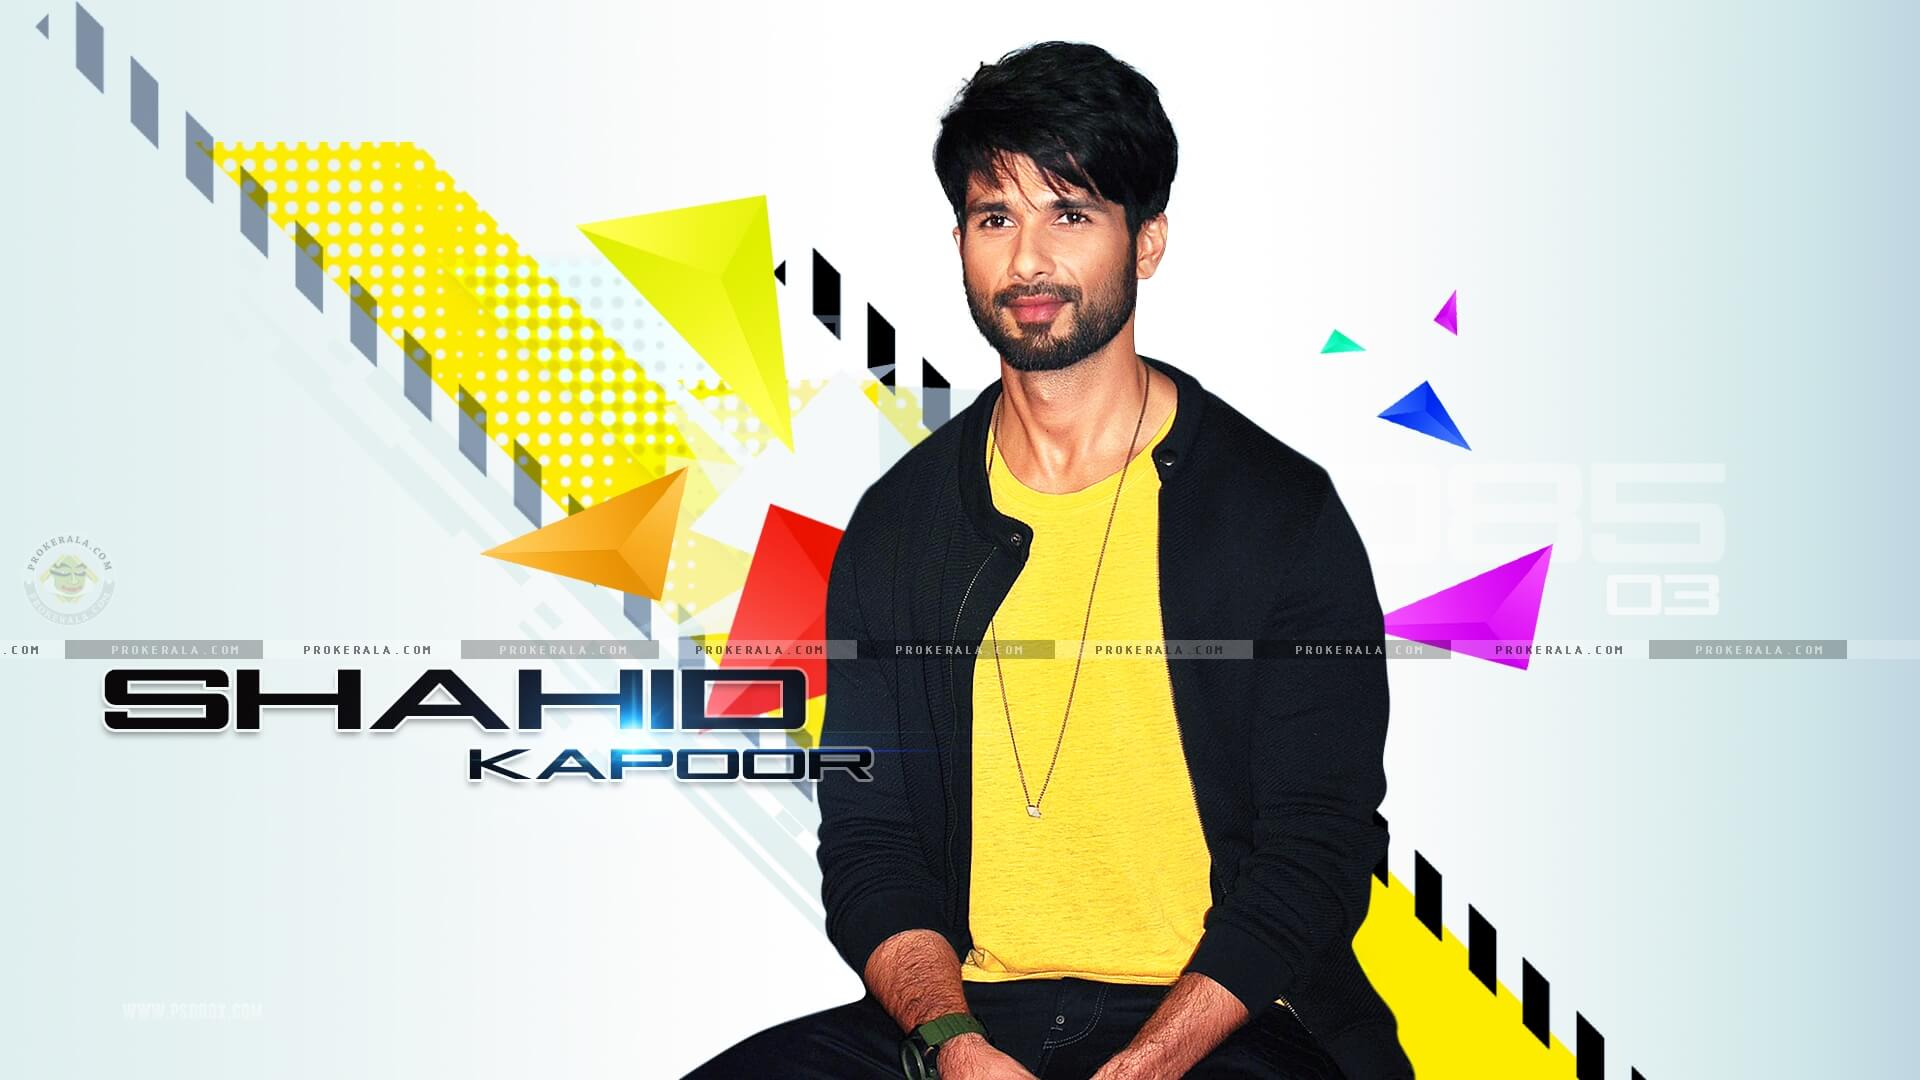 Shahid Kapoor Age, Wife, Height, Movie, Hairstyle, Family, Images(photos), Net Worth, Brother, Education, Biography, Date Of Birth, Awards, Twitter, Instagram, Wiki, Facebook, Imdb, Website (60)